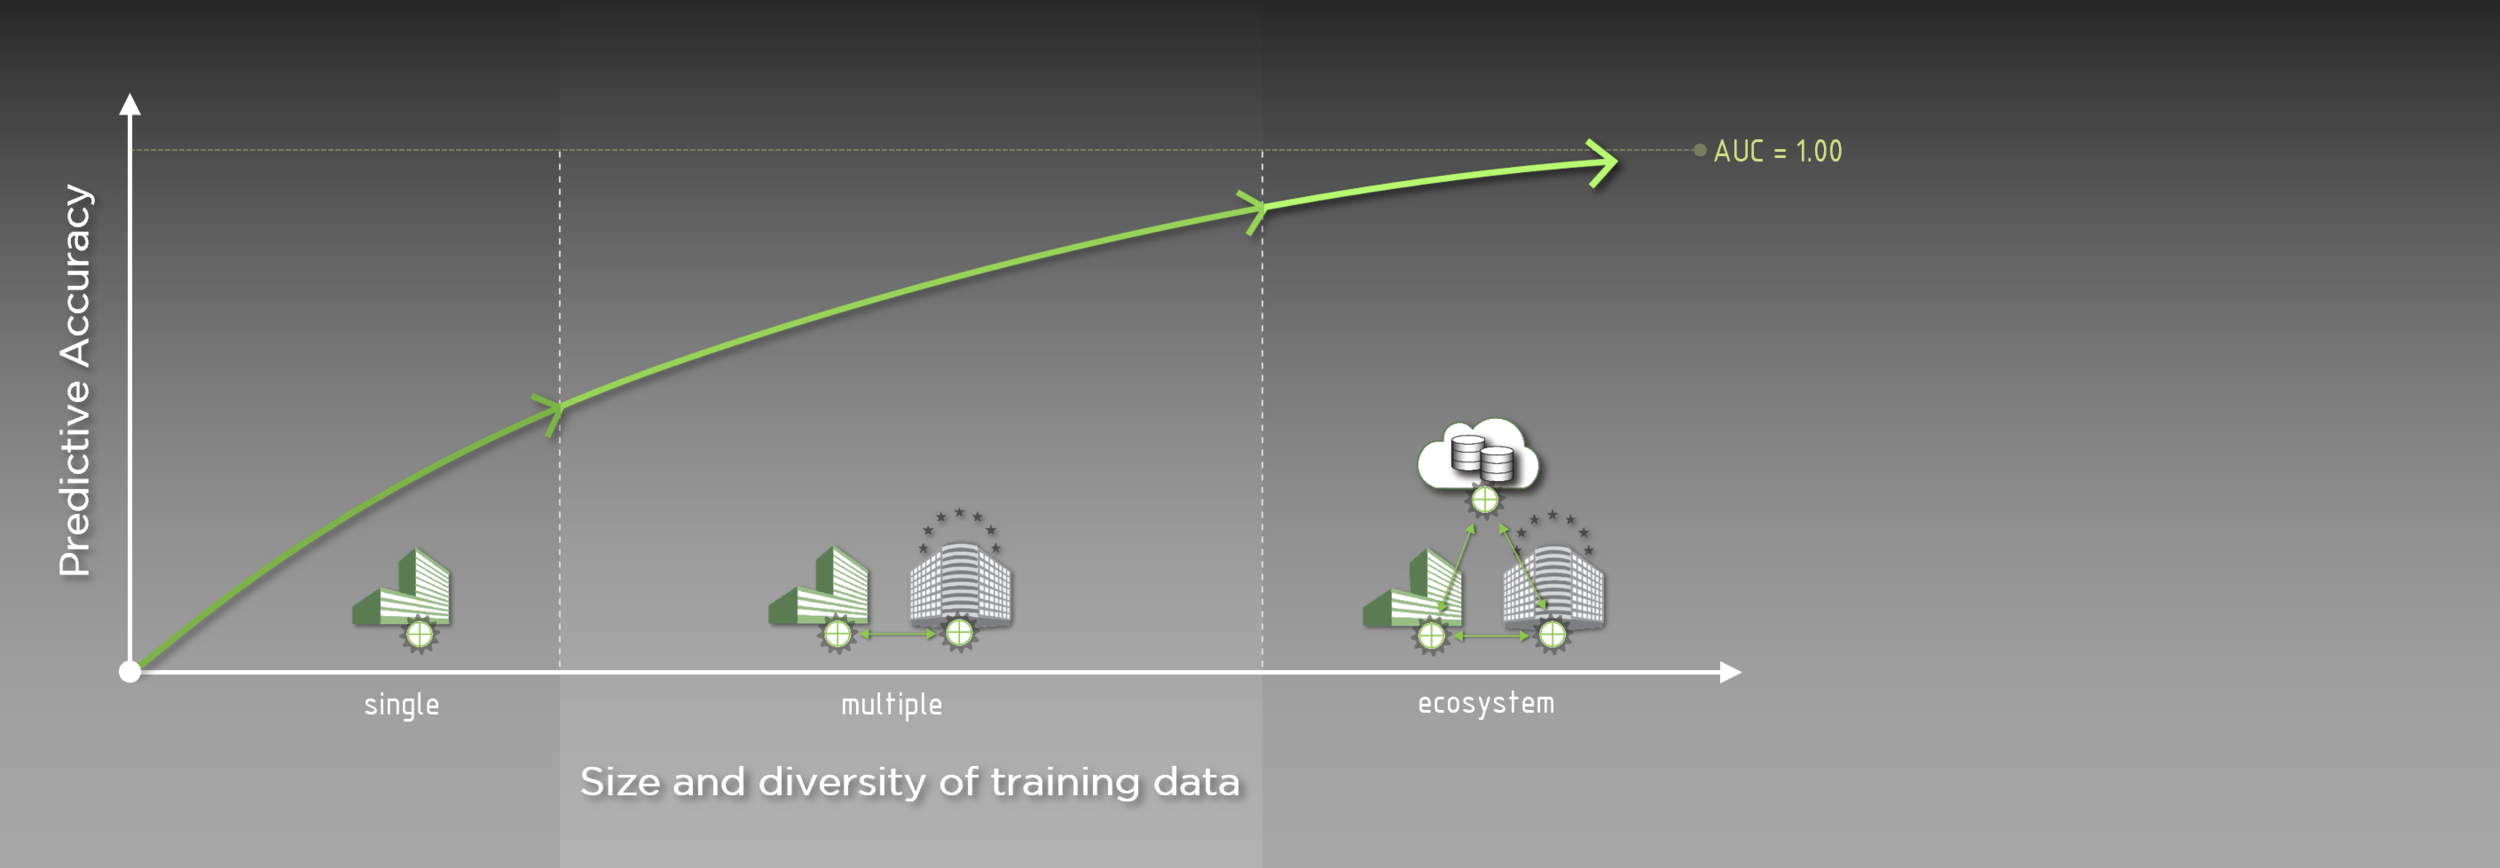 More data = better predictions. - Data scientists agree on this universal equation.